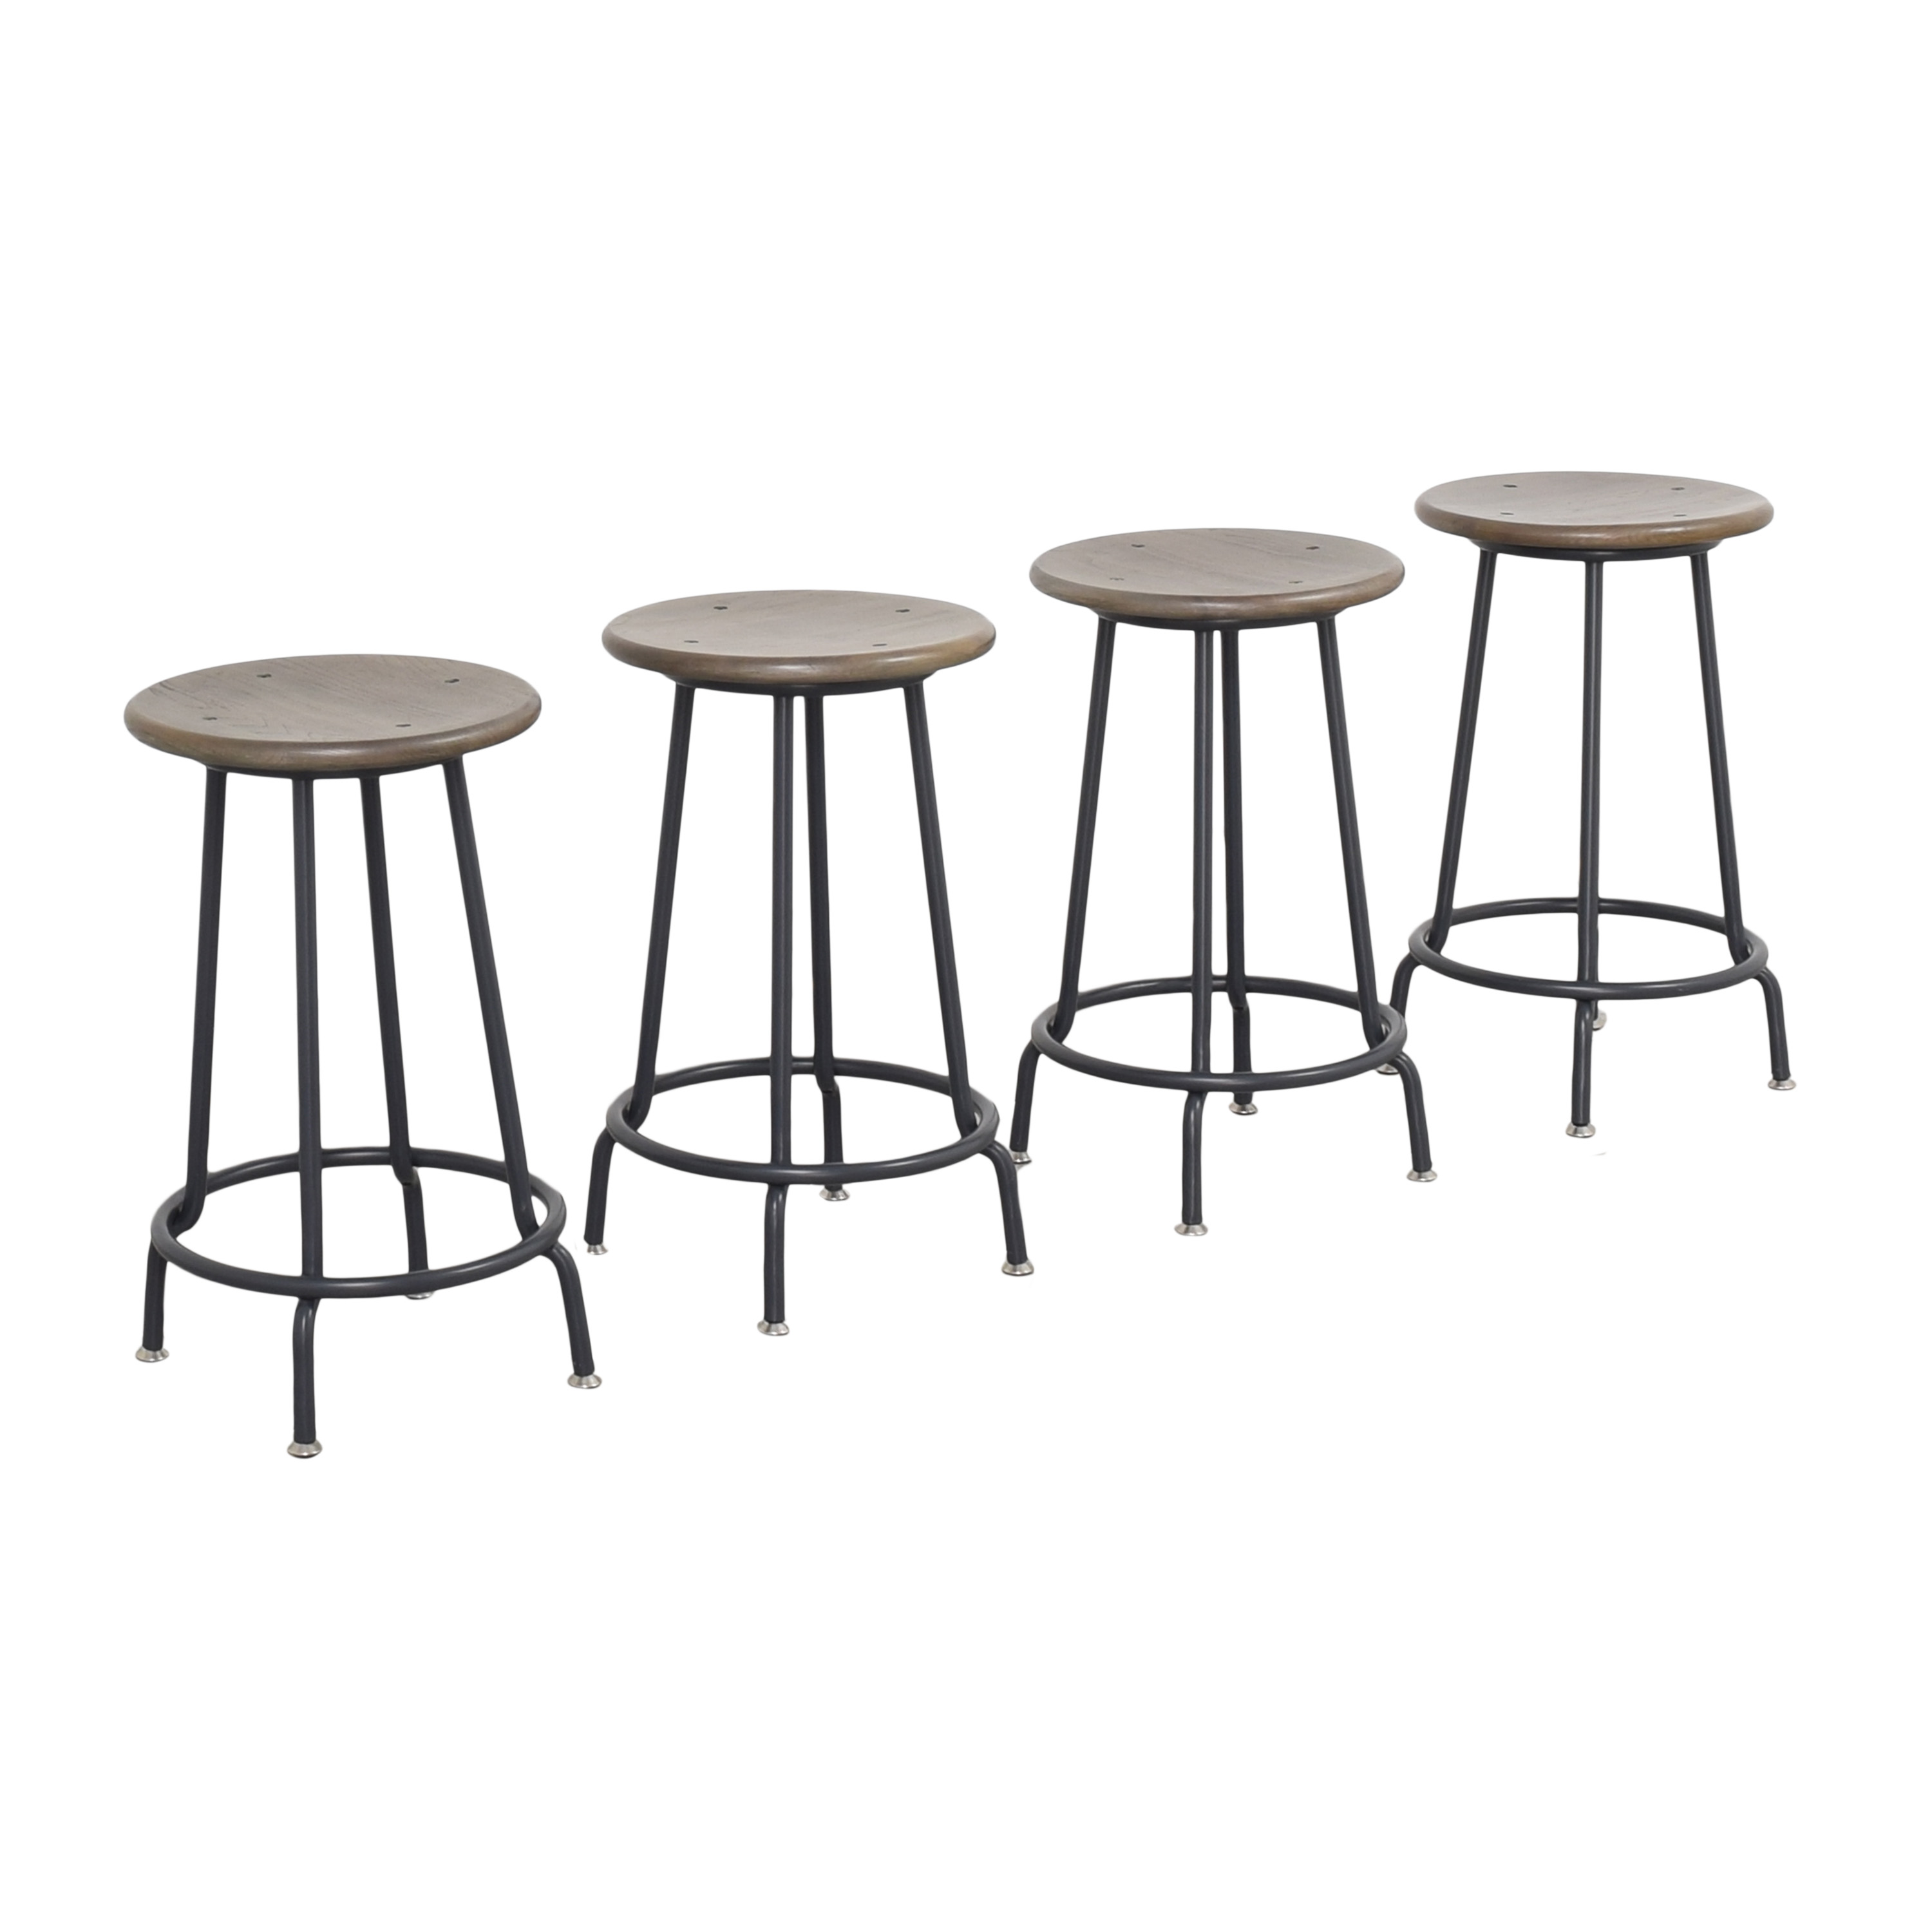 Crate & Barrel Scholar Counter Stools / Chairs